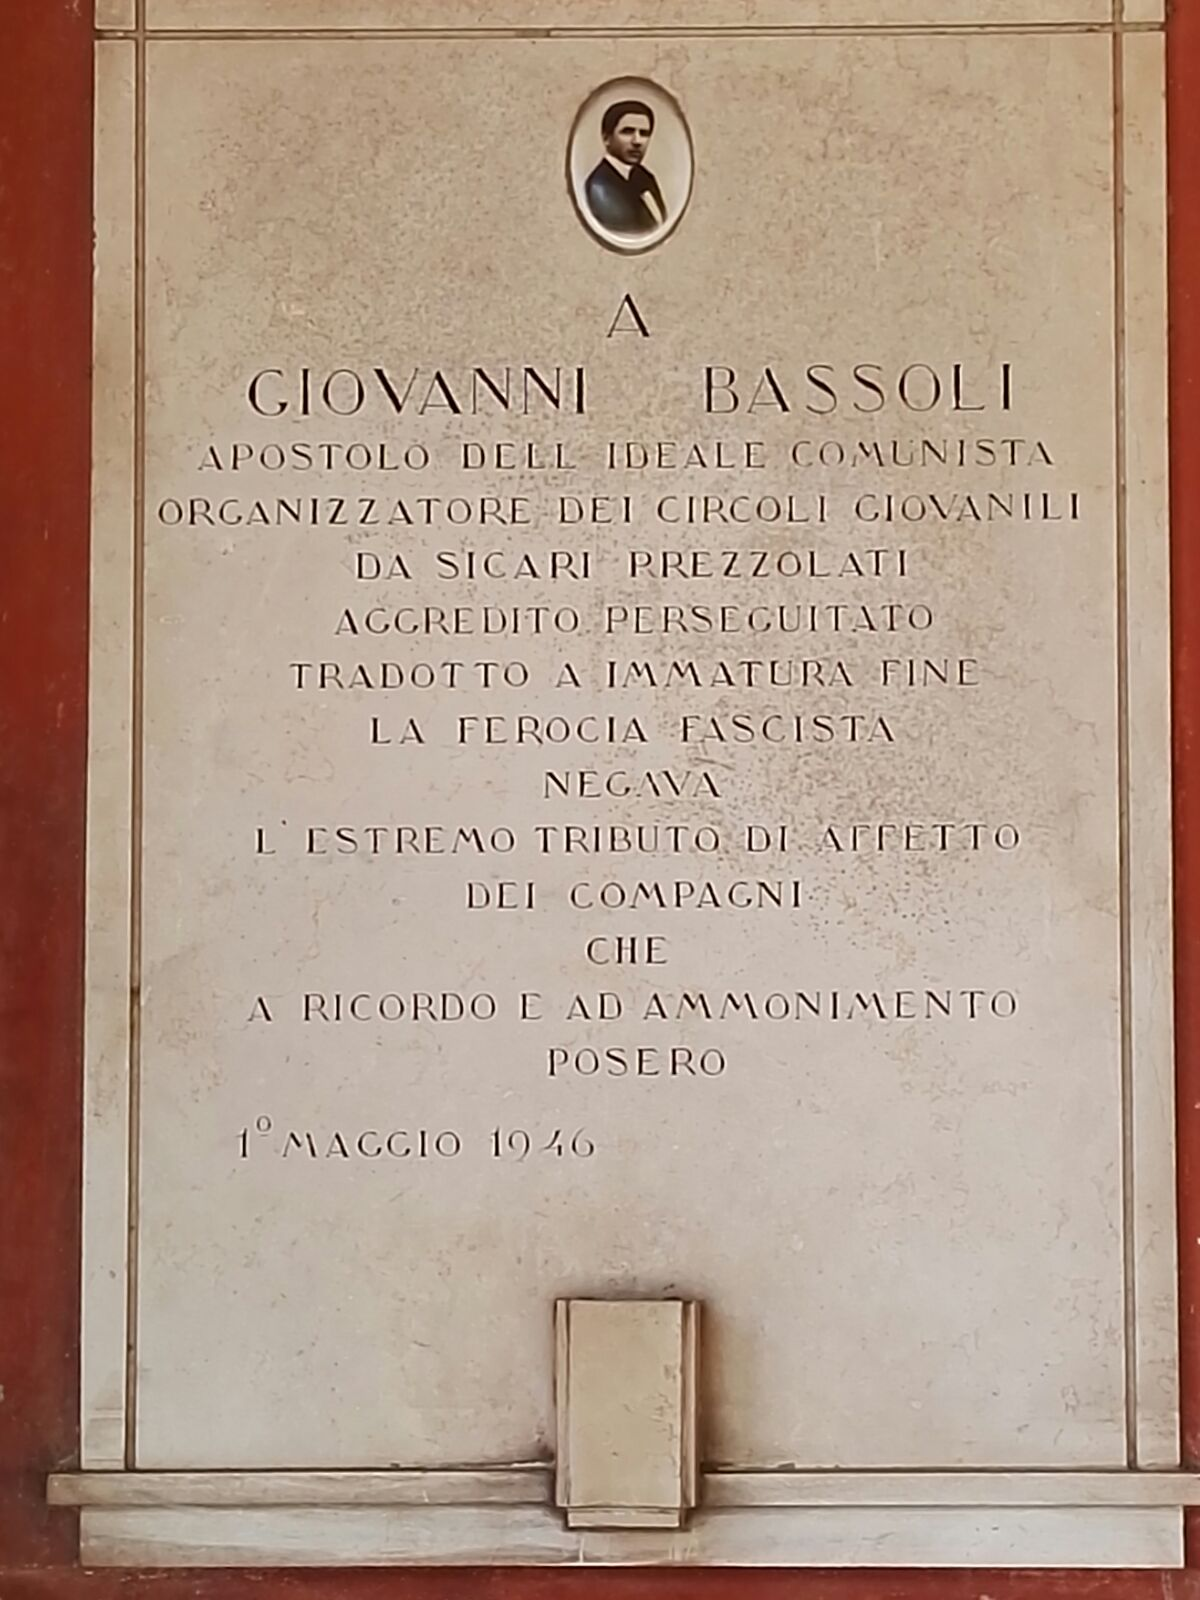 Giovanni Bassoli antifascista